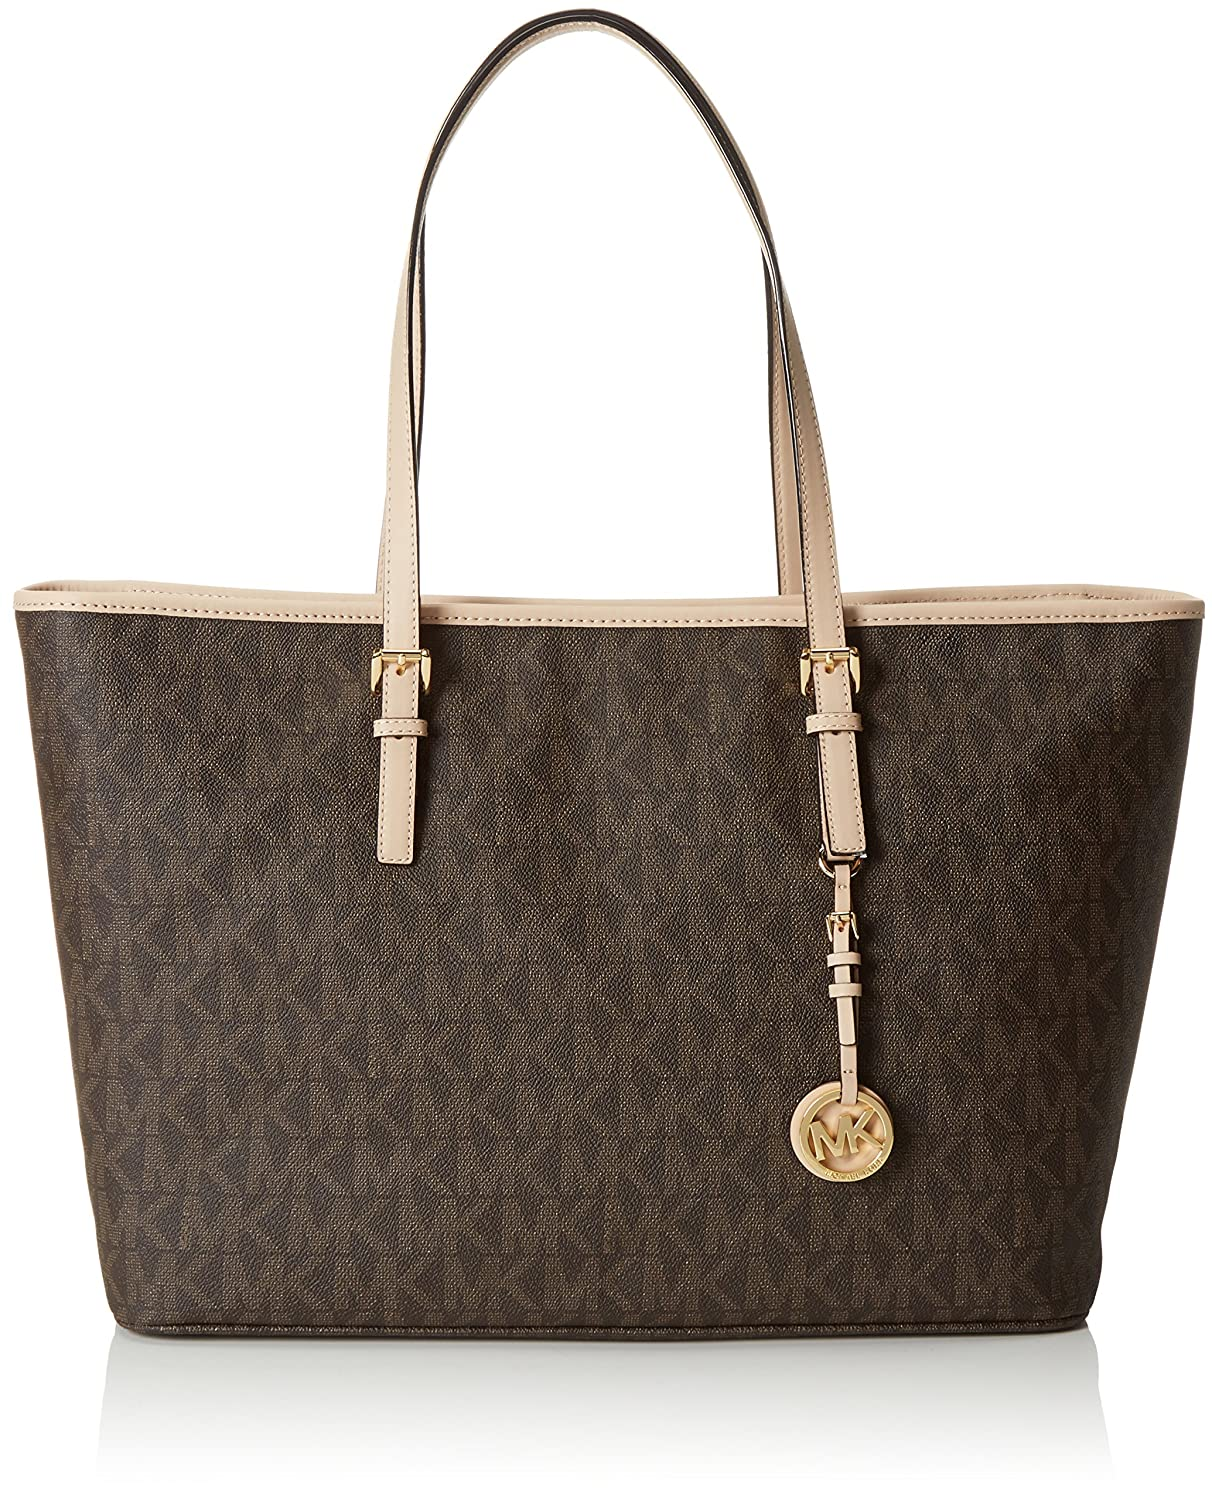 ff94223eaaf5 Amazon.com: Michael Michael Kors Jet Set Medium Multifunctional Tote Brown: Michael  Kors: Shoes